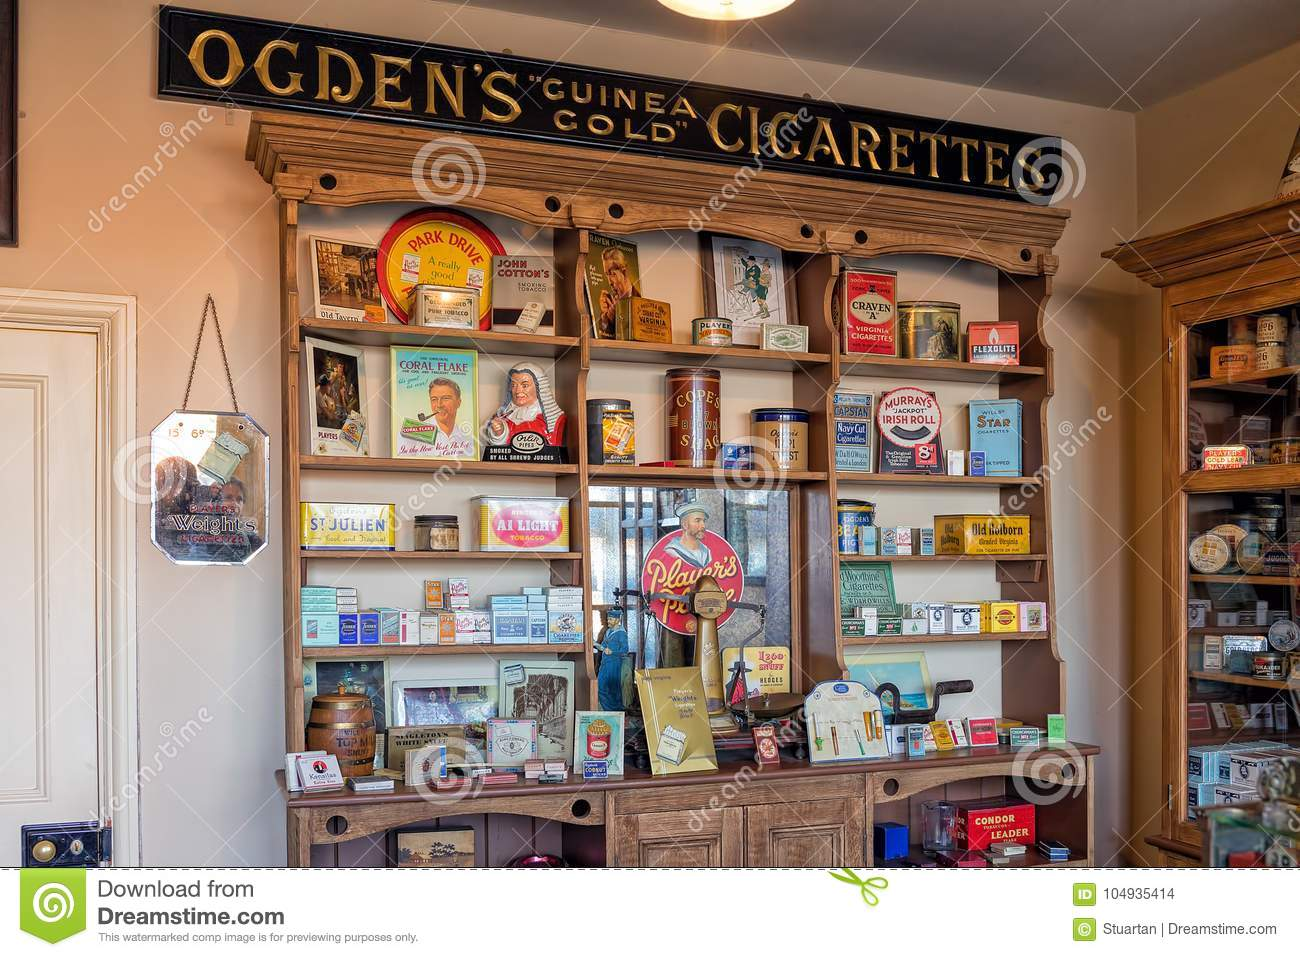 A Cabinet Displaying A Variety Of Well Known Cigarette And Tobacco Brands  Together With Smoking Accessories From The Early To Mid 20th Century.